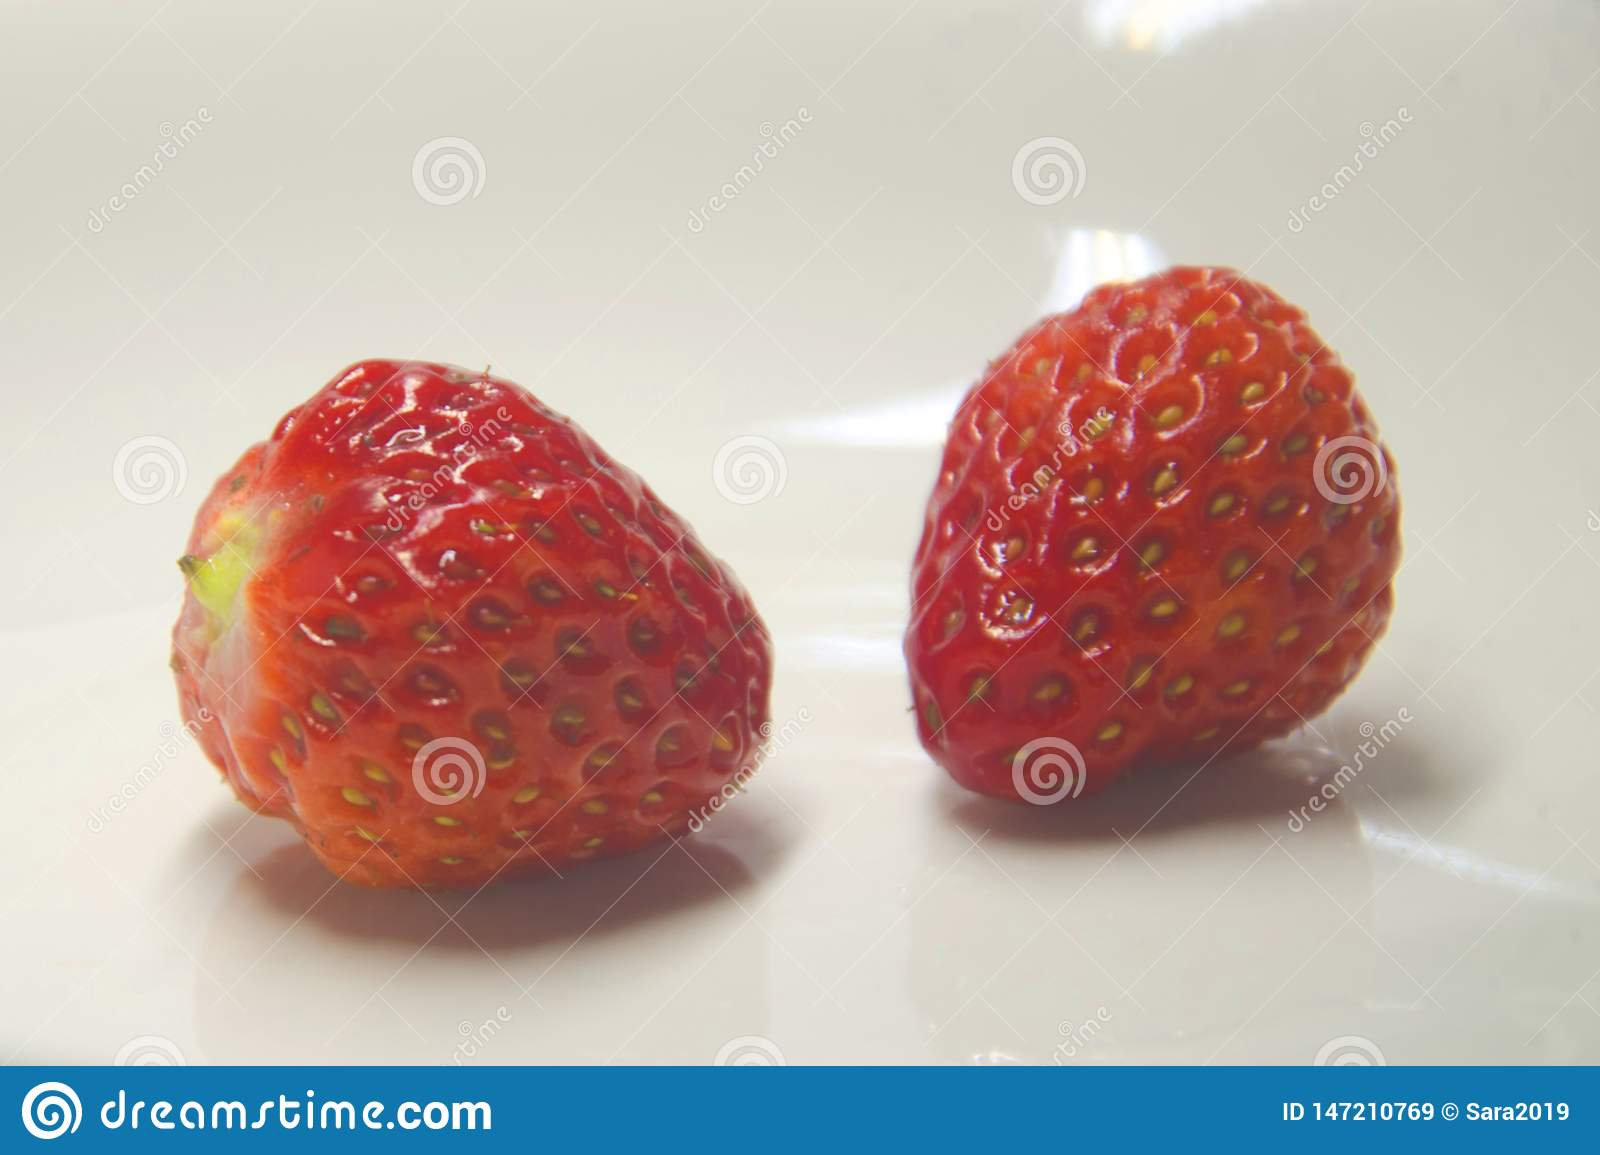 Bright red strawberry against white background